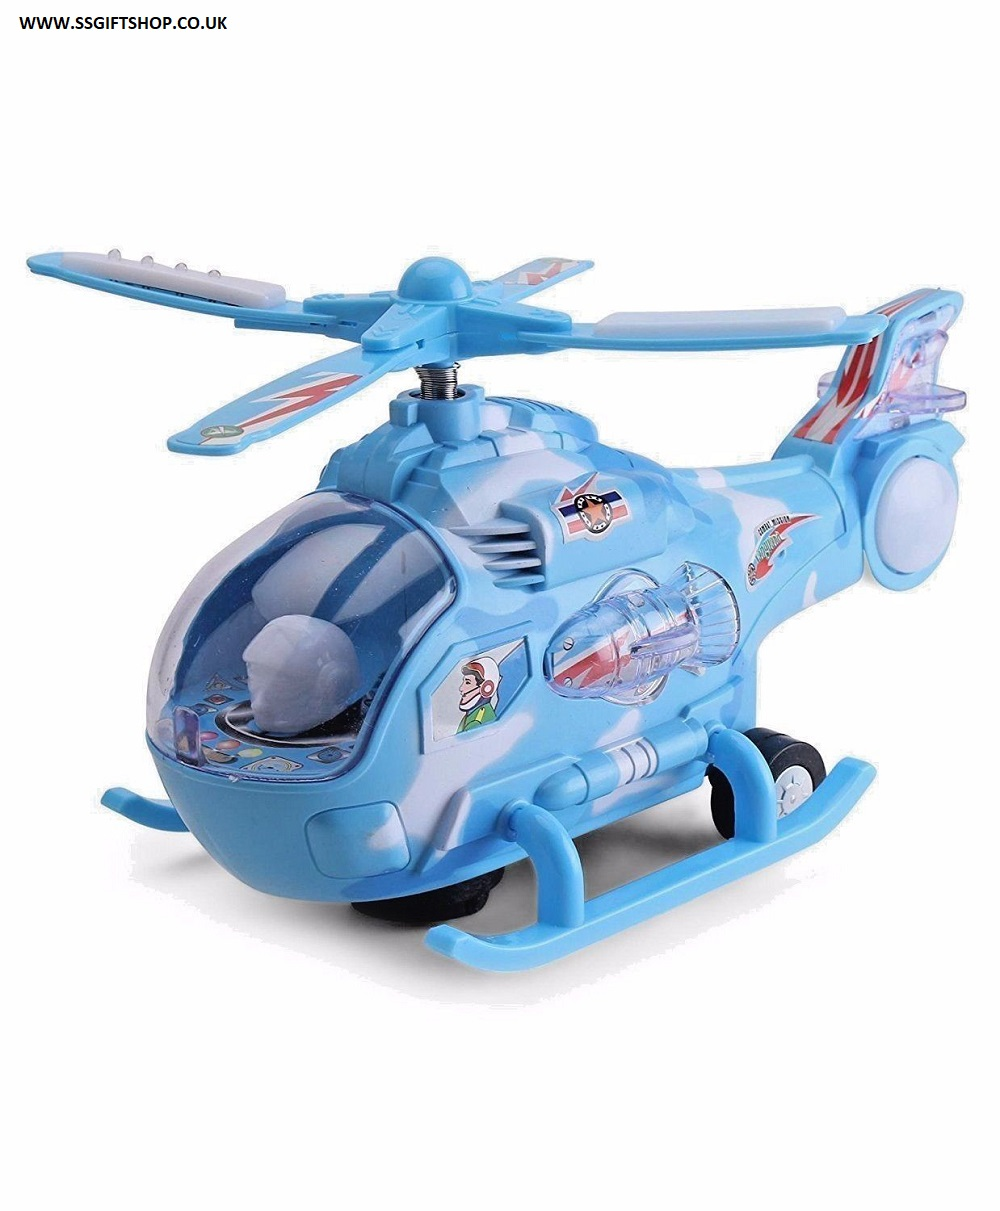 KIDS BOY 26cm Helicopter Long Flashing Lights & Music Battery Operated.